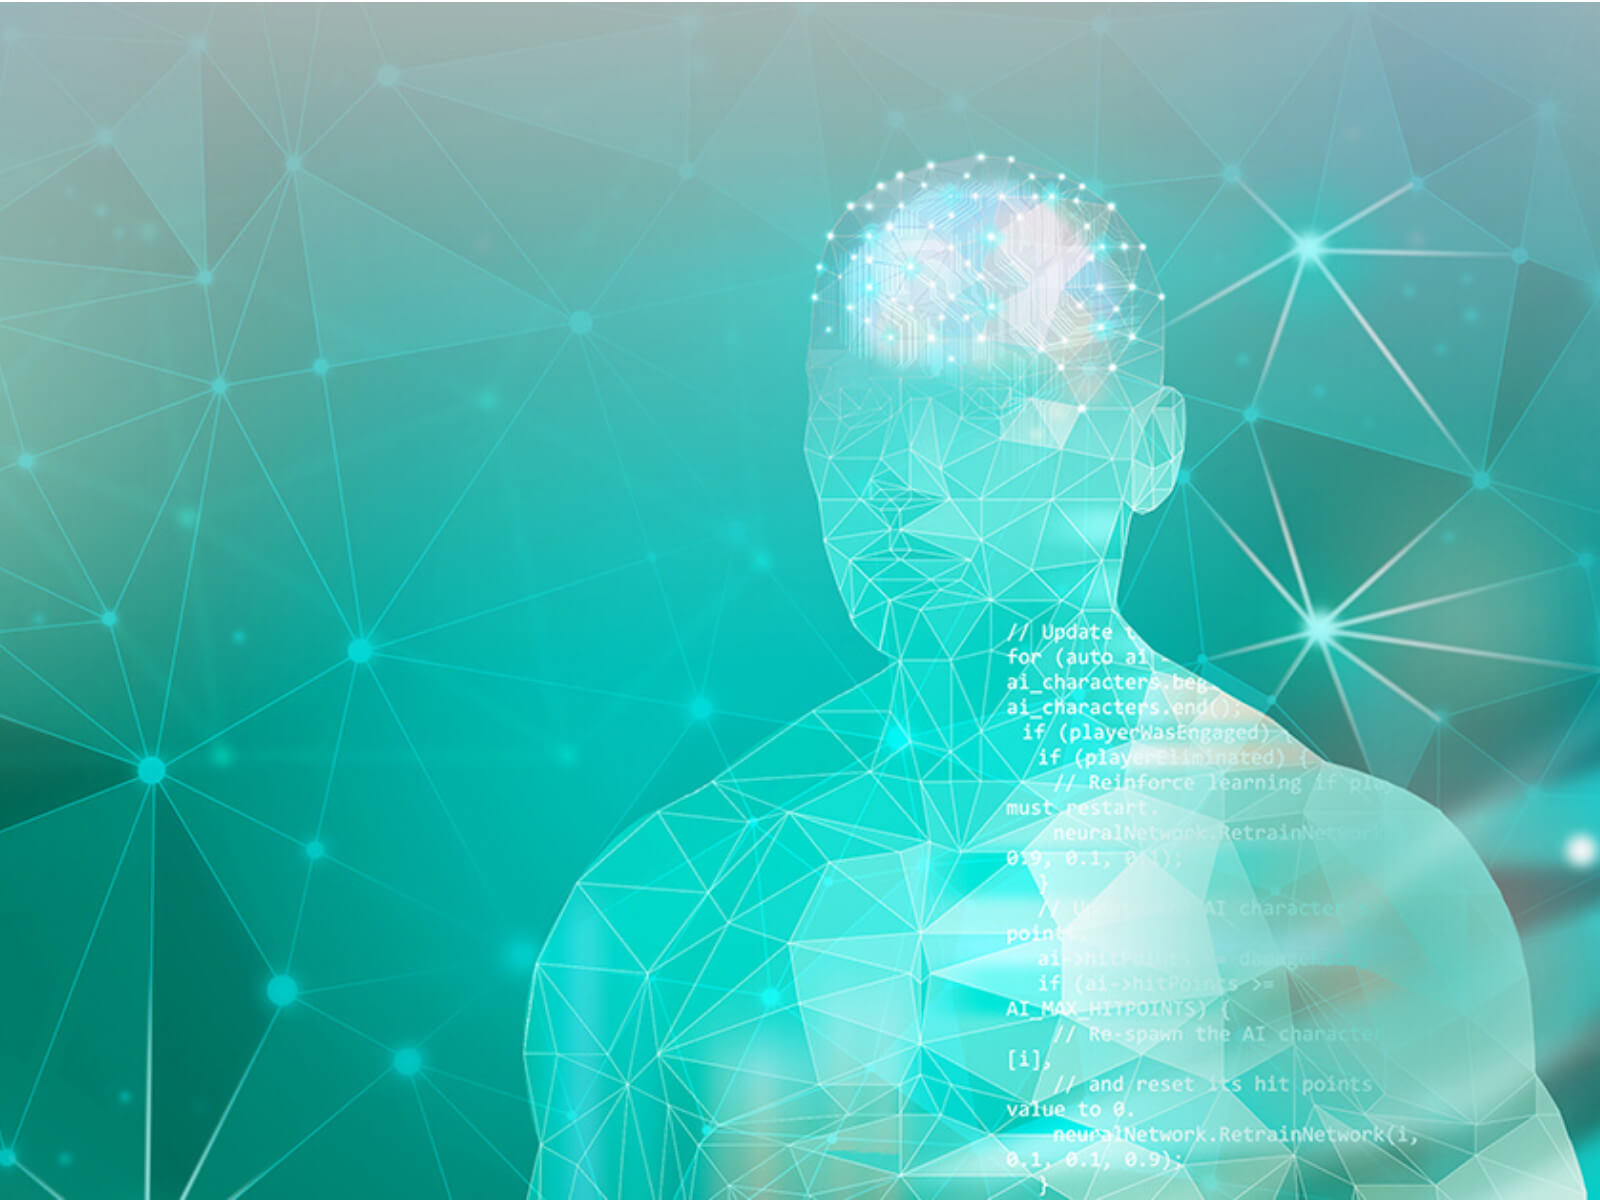 3D mesh of a humanoid man with programming code overlaid on his body.